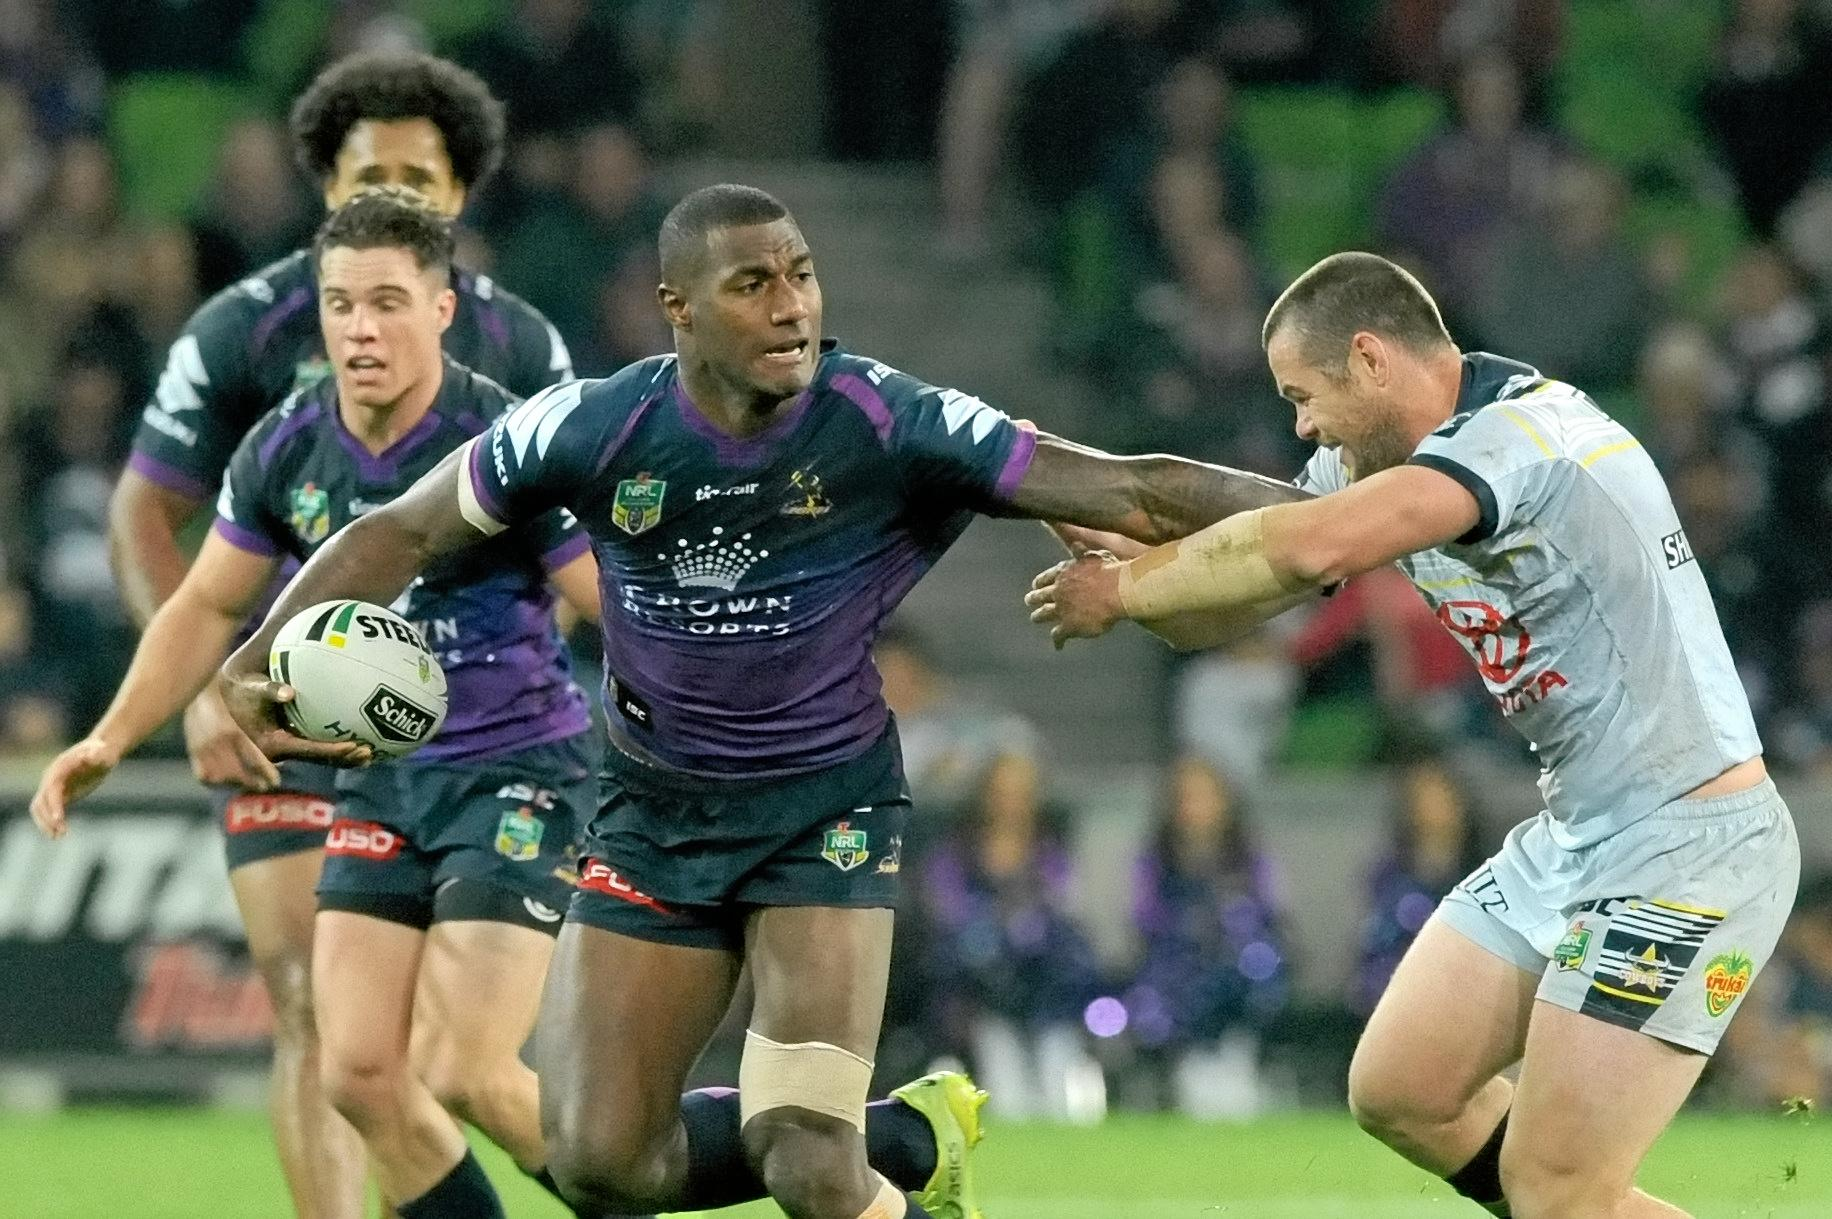 Suliasi Vunivalu of the Storm beats a tackle by Shaun Fensom of the Cowboys.